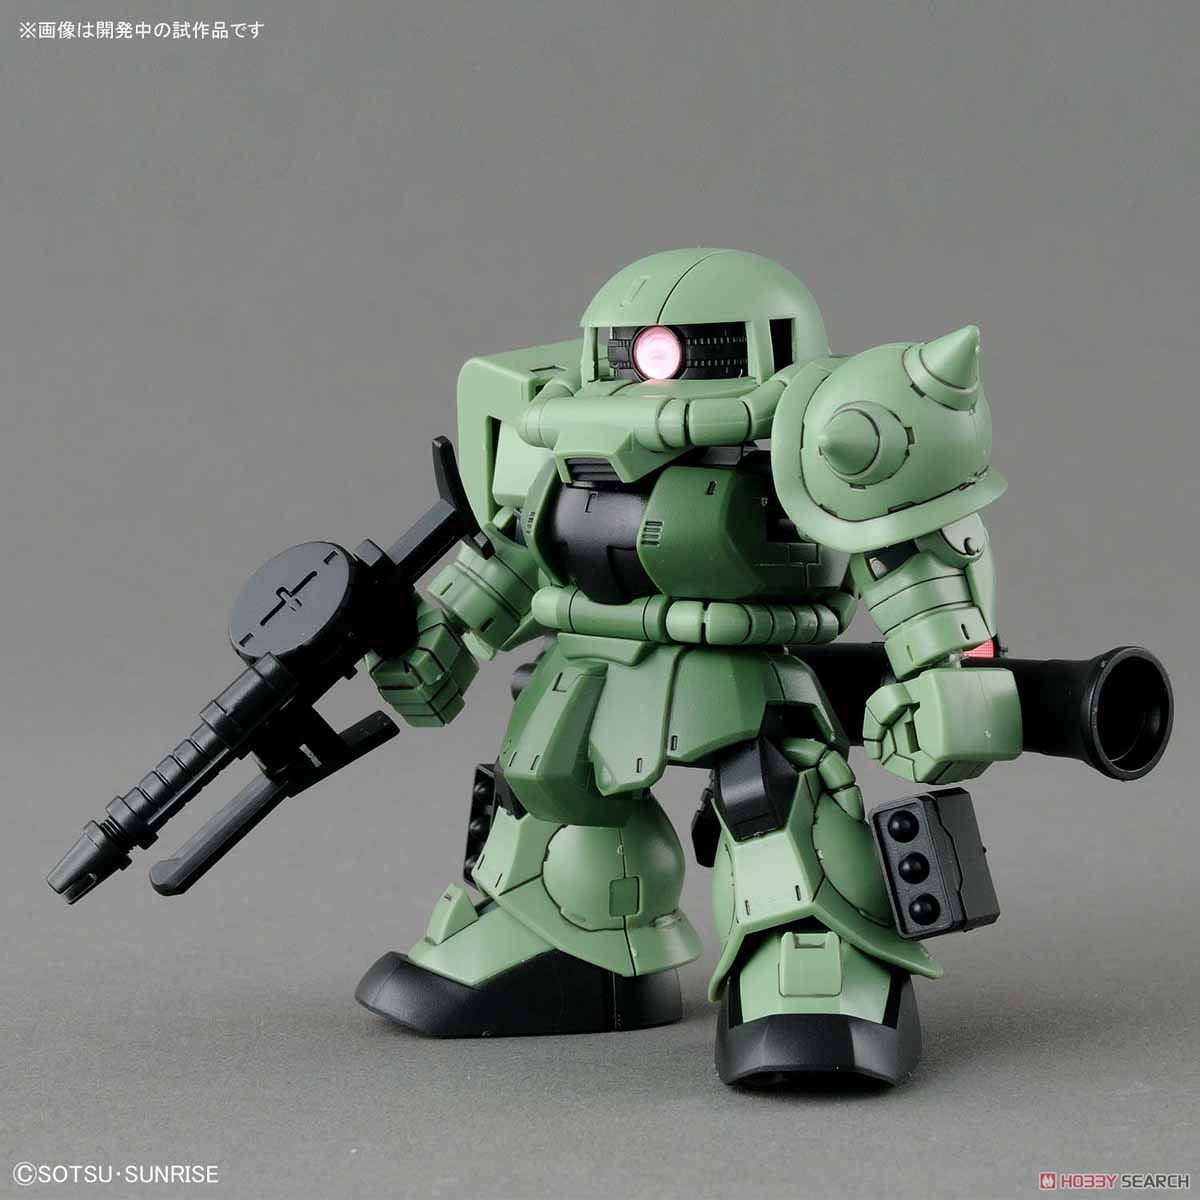 <font><b>Gundam</b></font> SDCS 004 <font><b>BB</b></font> Cross Silhouette Zaku II Mobile Suit Assemble Model Kits Action Figures Children's toys (44) image